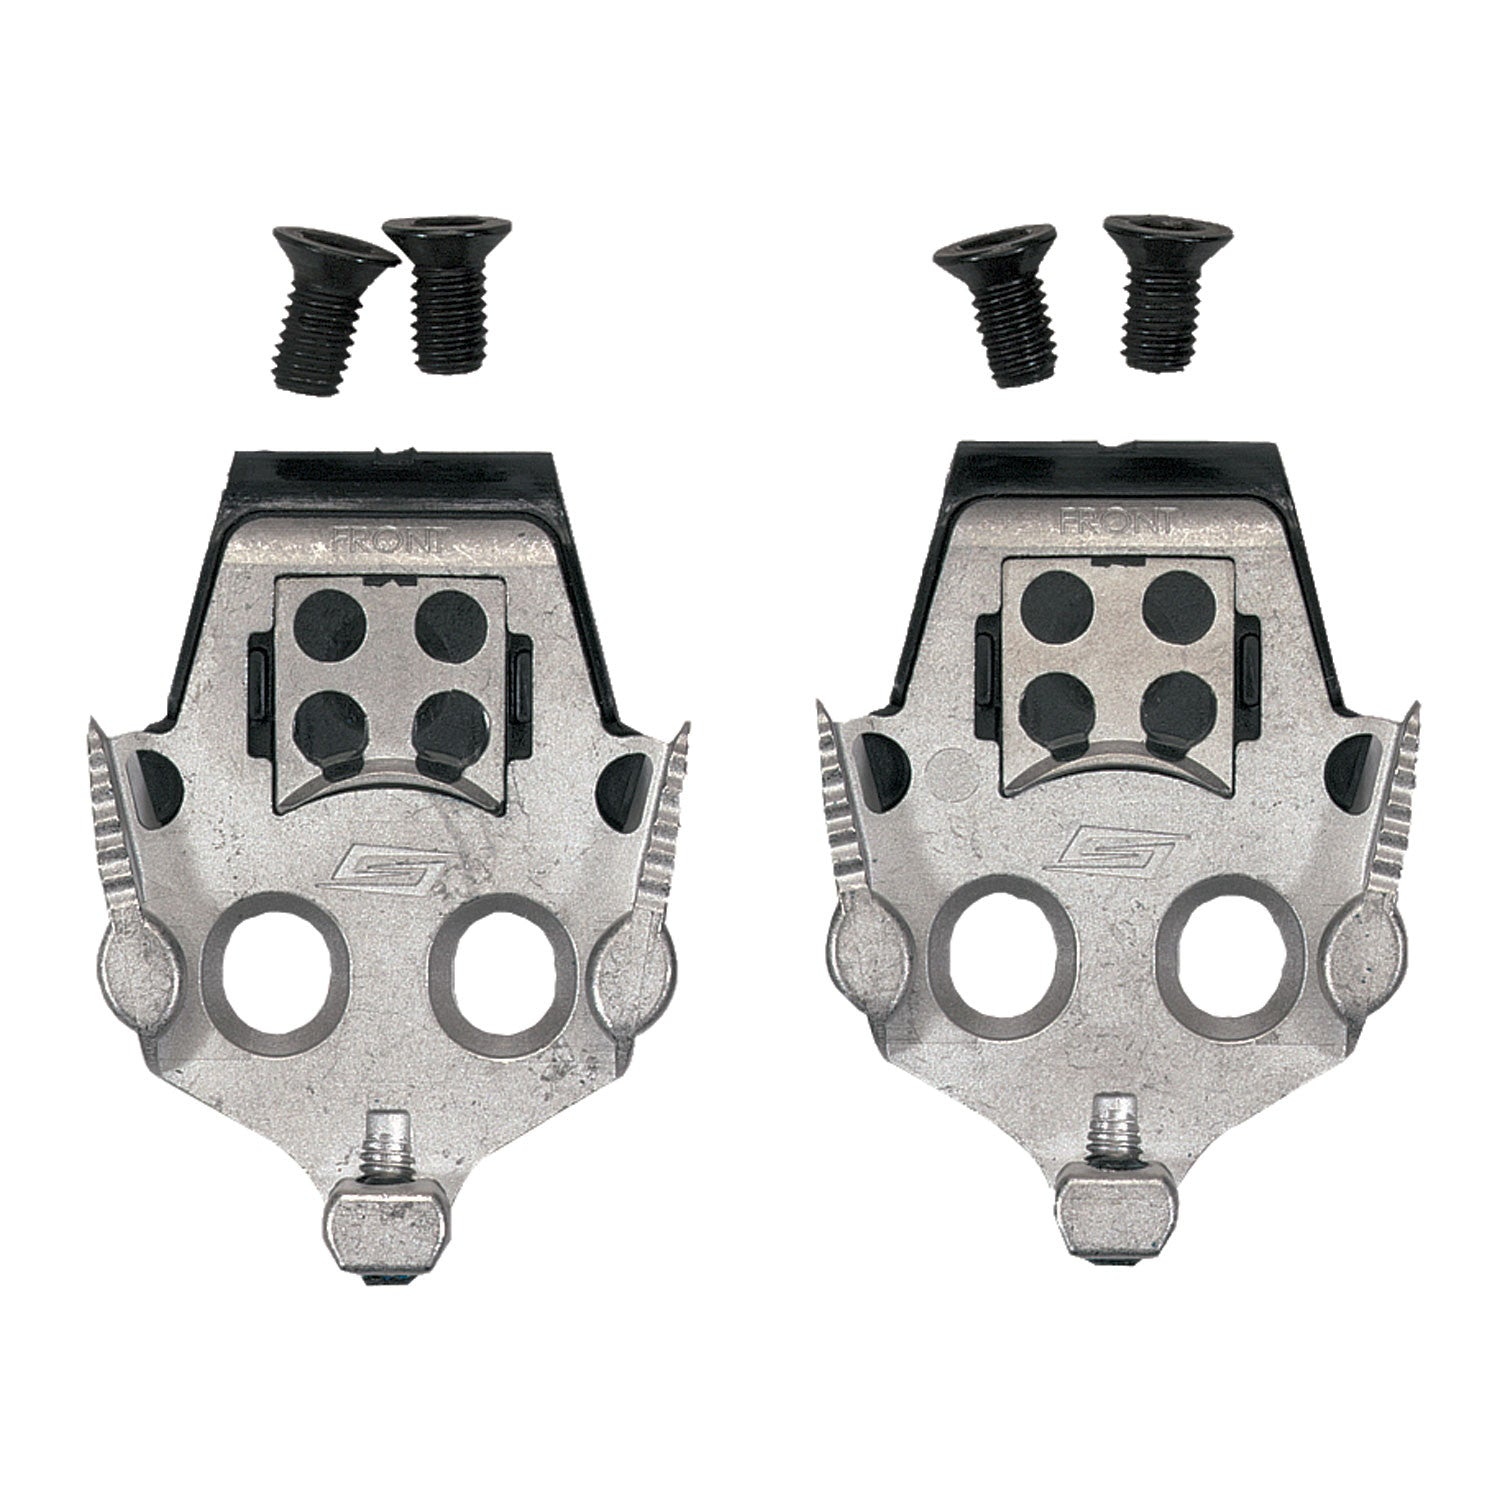 Speedplay Frog G3 ATB Cleats - Racer Sportif